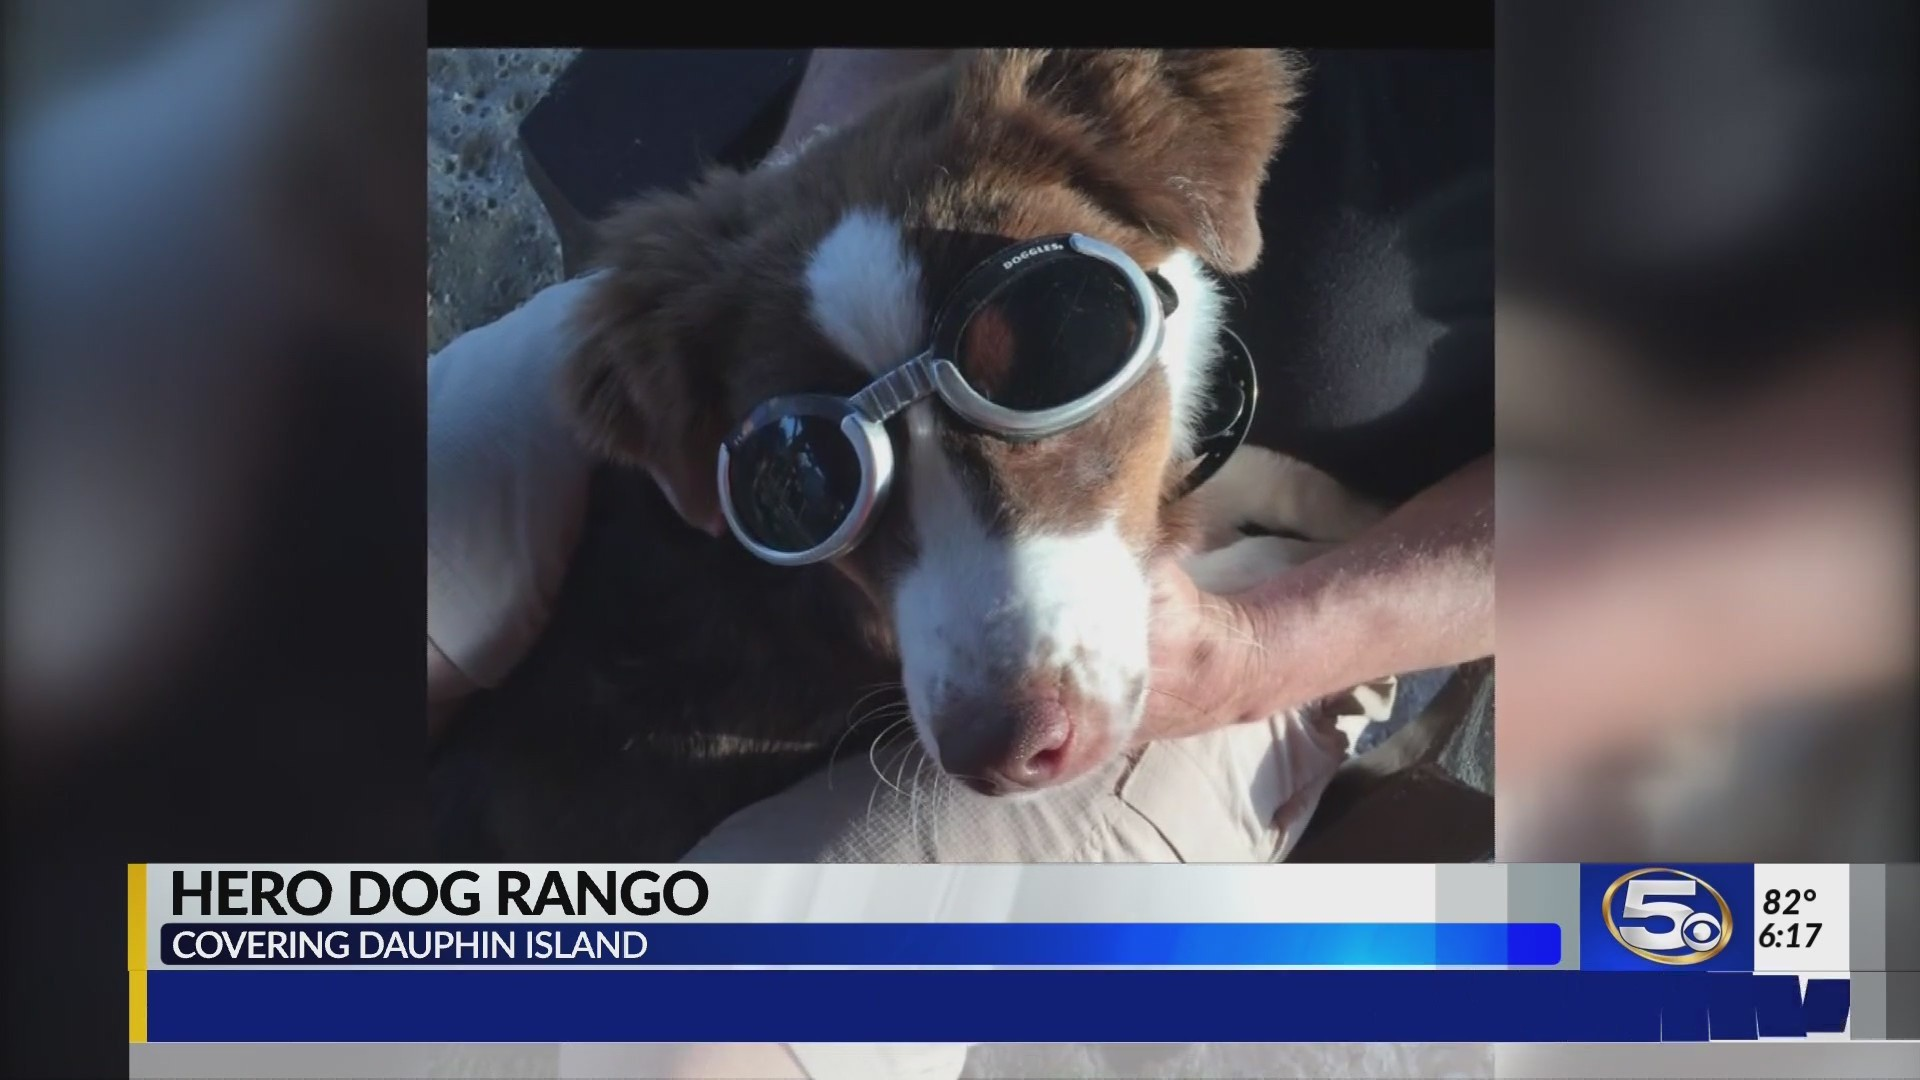 VIDEO:  Rango, Dauphin Island's alert hero dog